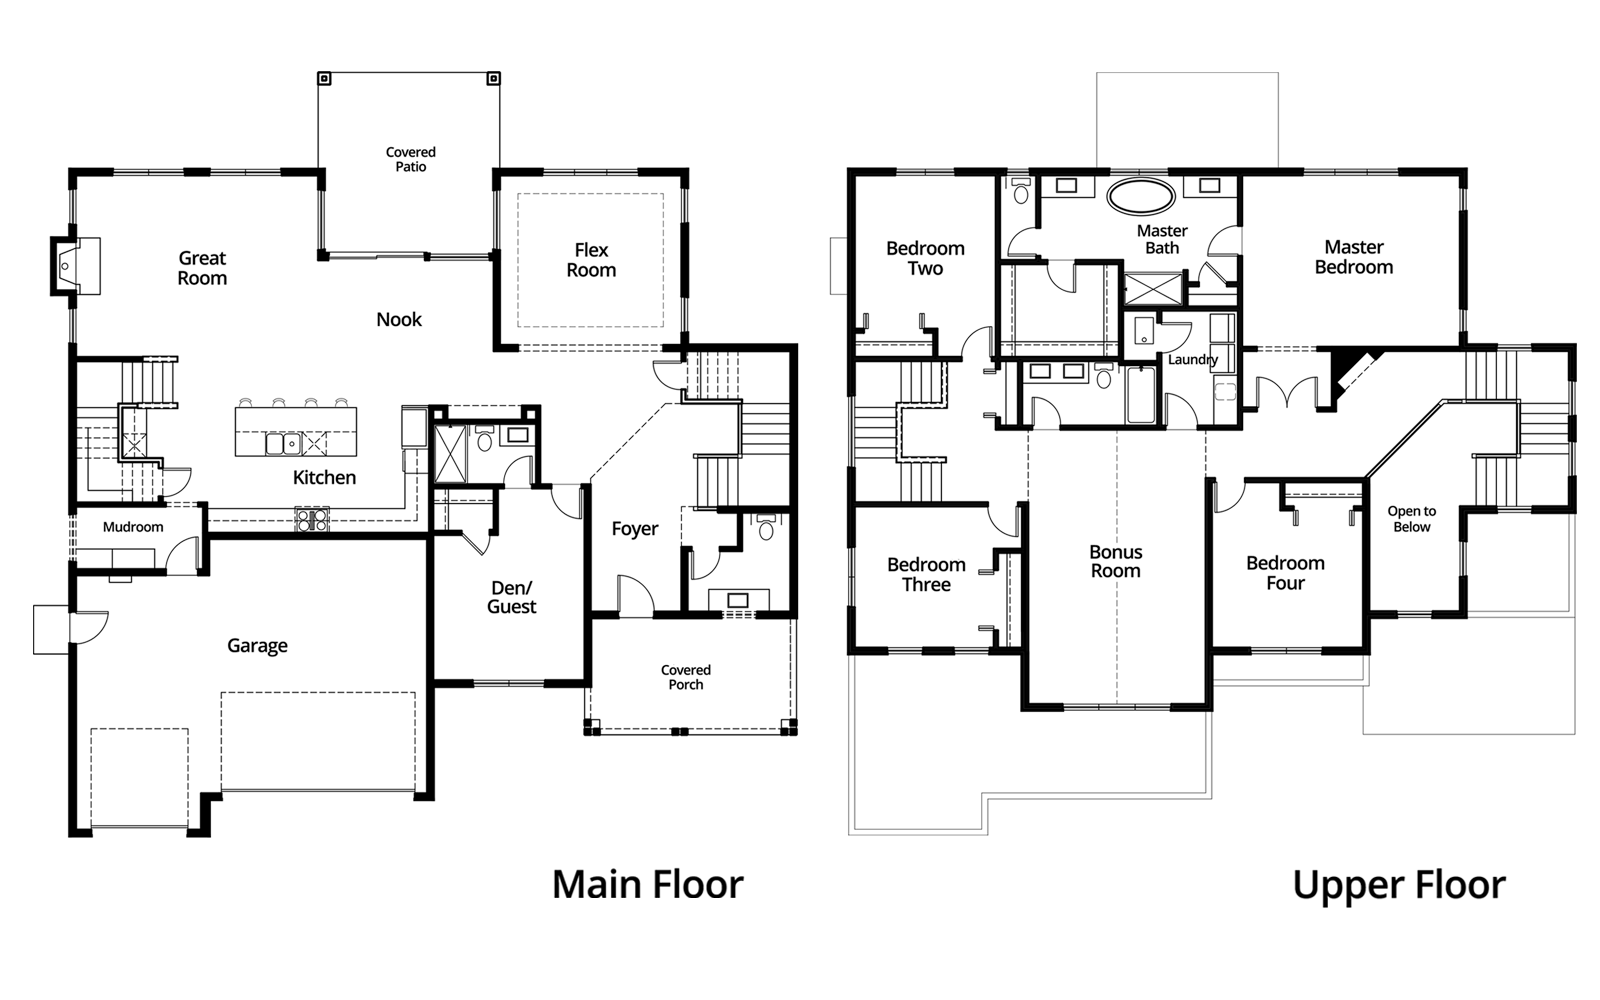 House Plans | Shelton Heights on